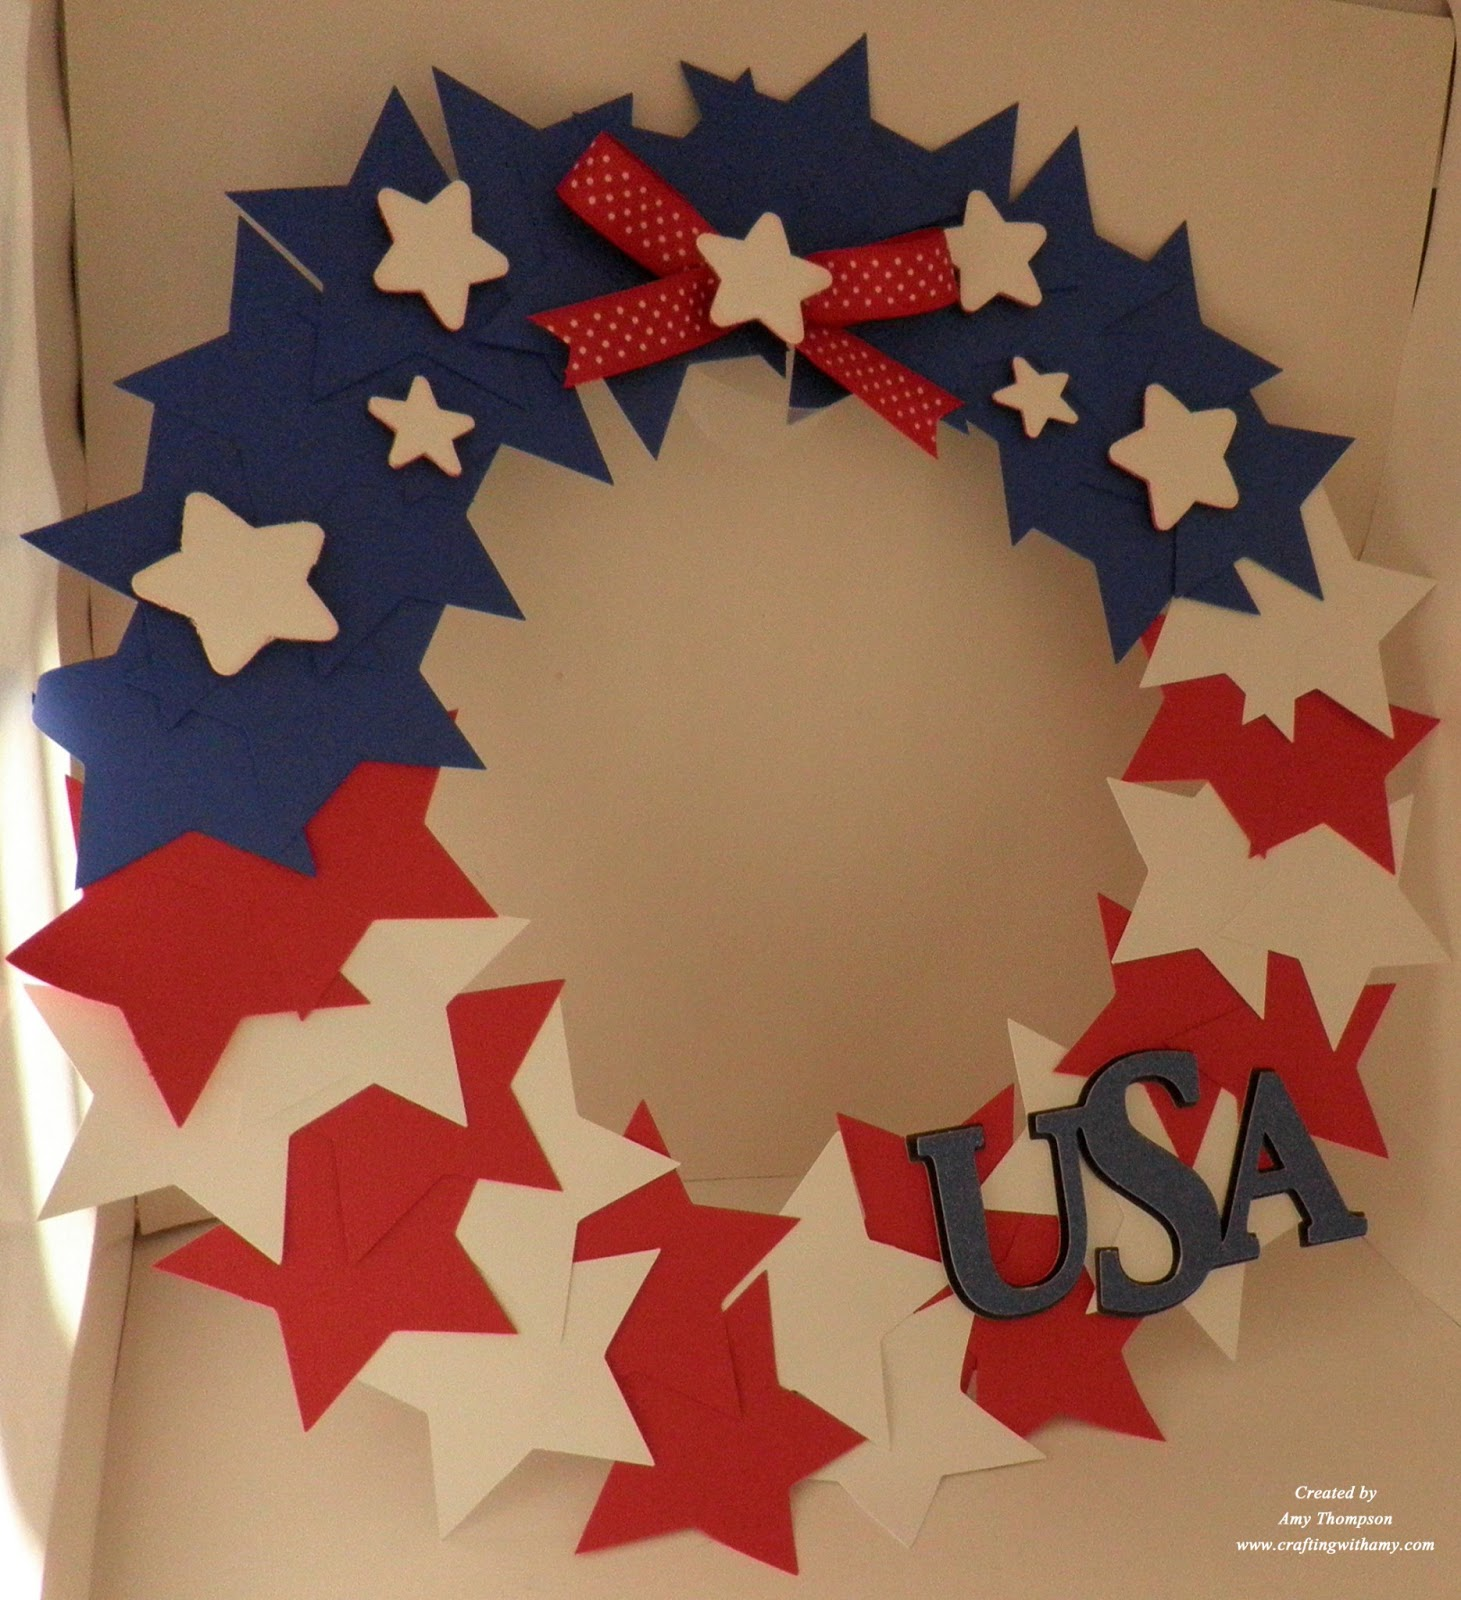 Fantabulous cricut challenge blog fantabulous friday 165 wedding - Challenge 162 Memorial Day Hello Everyone Welcome To Another Challenge At Fantabulous Cricut